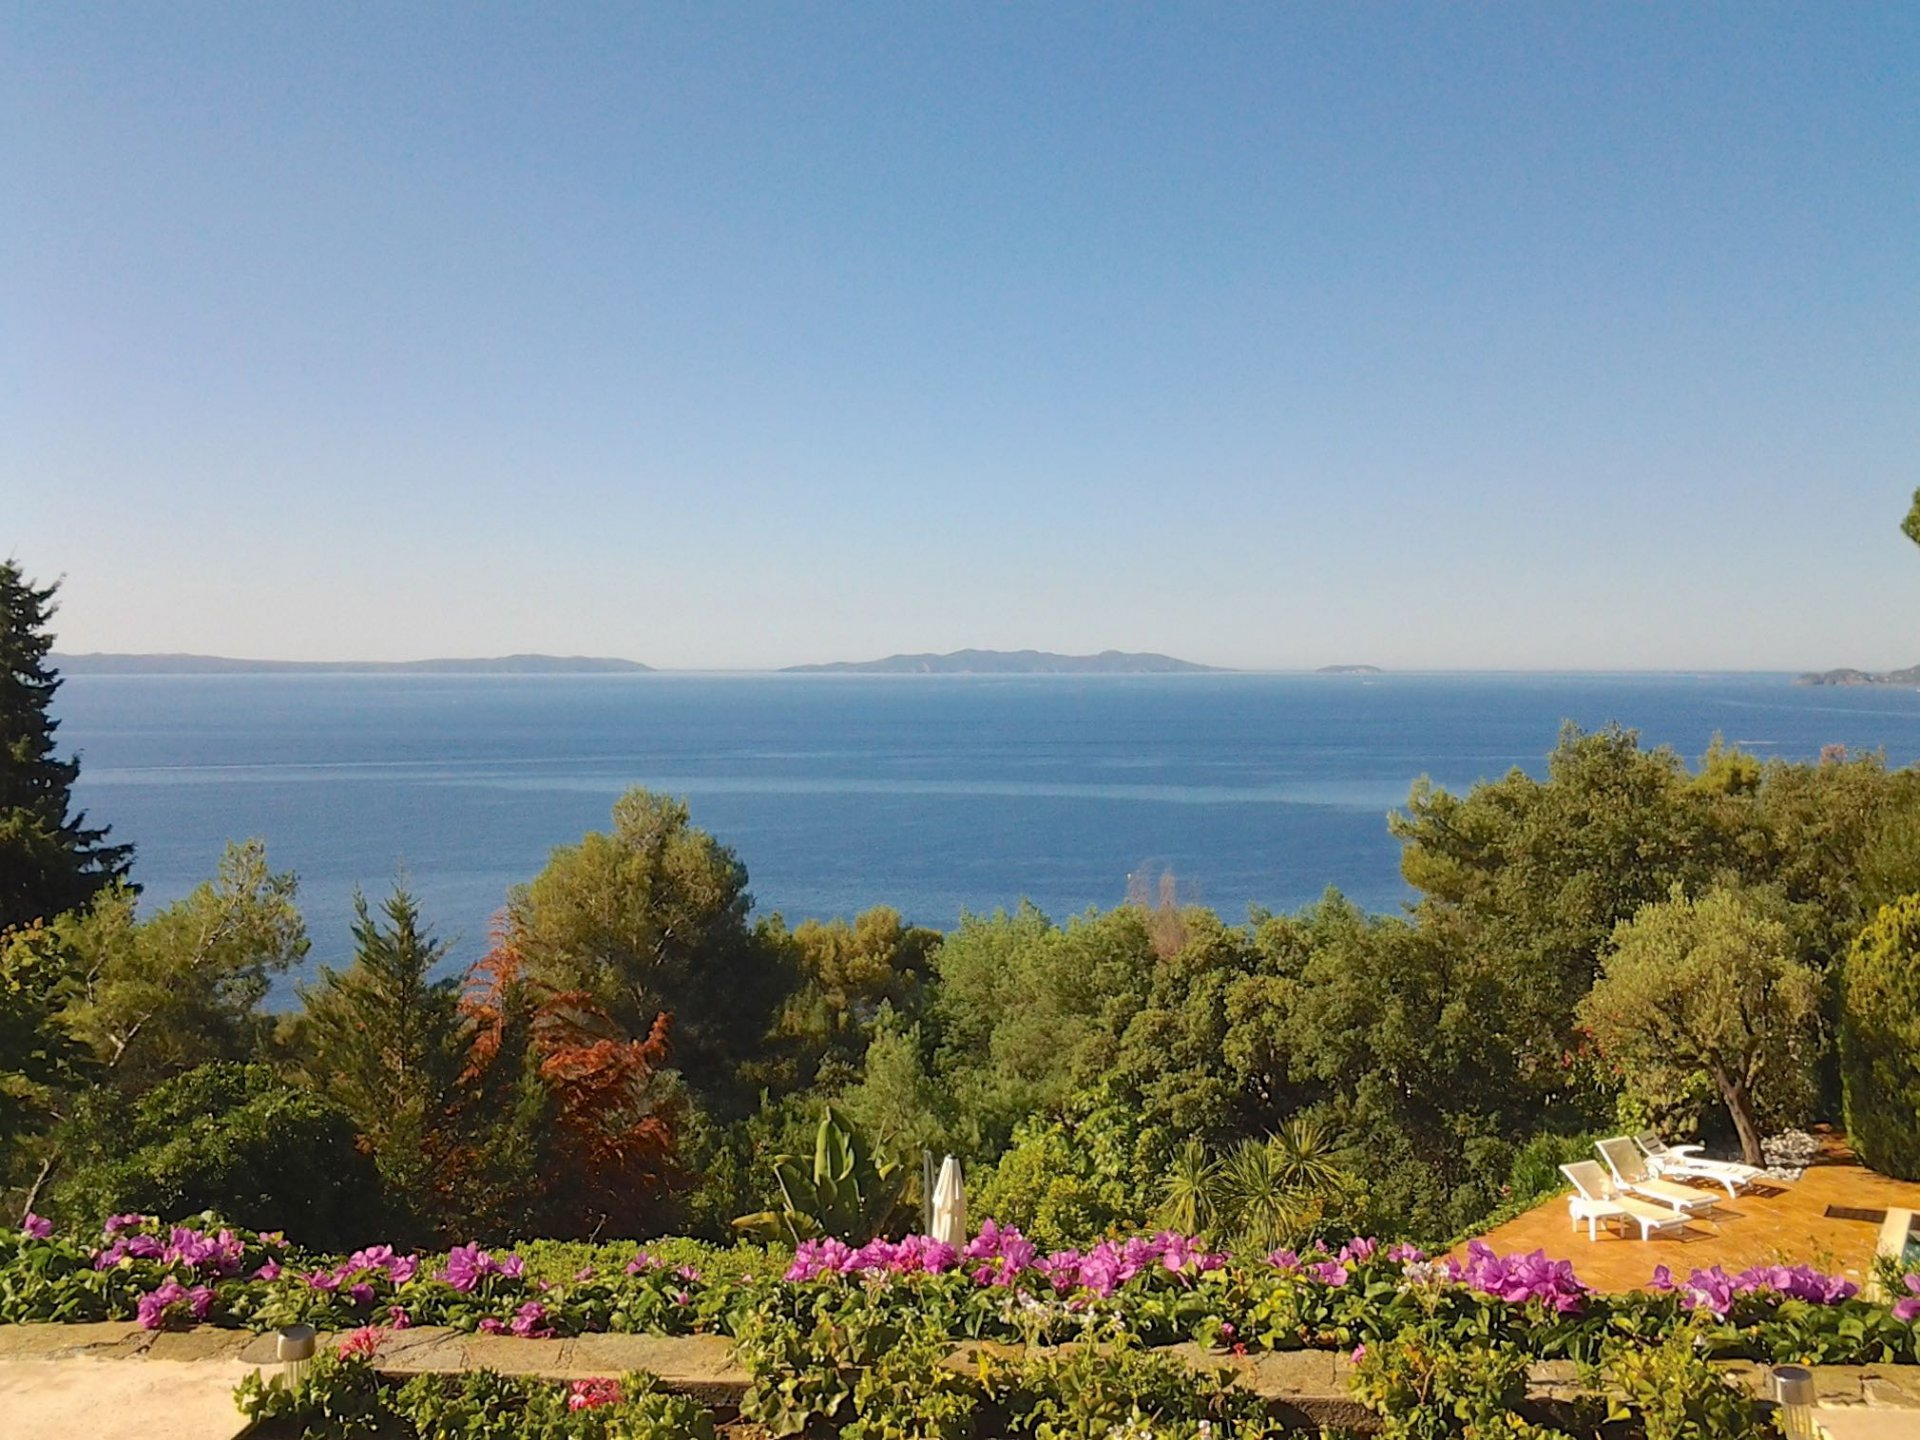 Property with stunning view le Lavandou Aiguebelle Var Provence